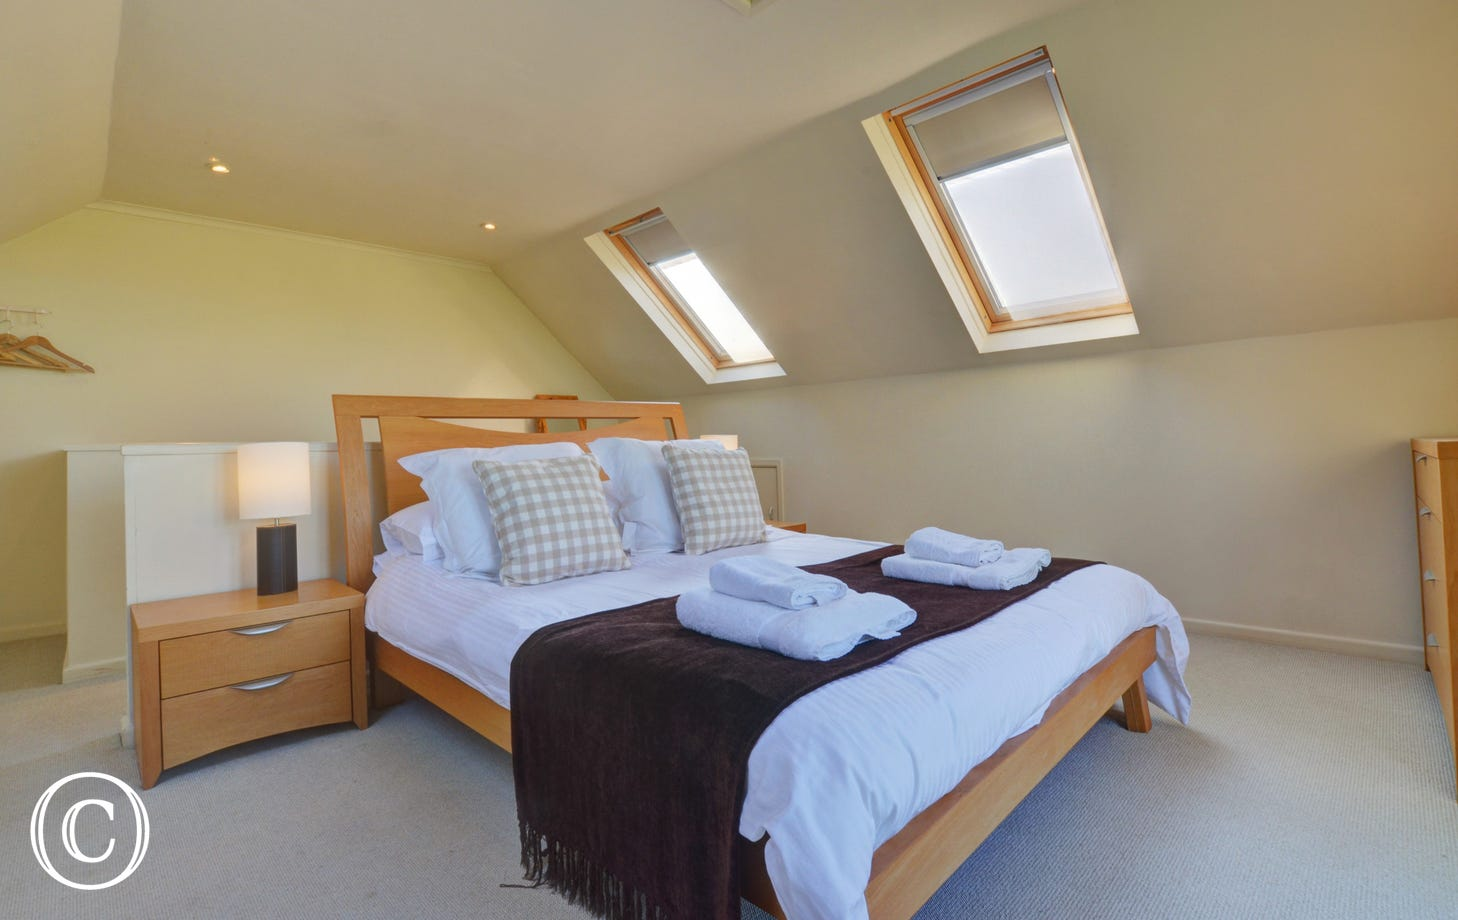 Light and airy with double bed and bedside table